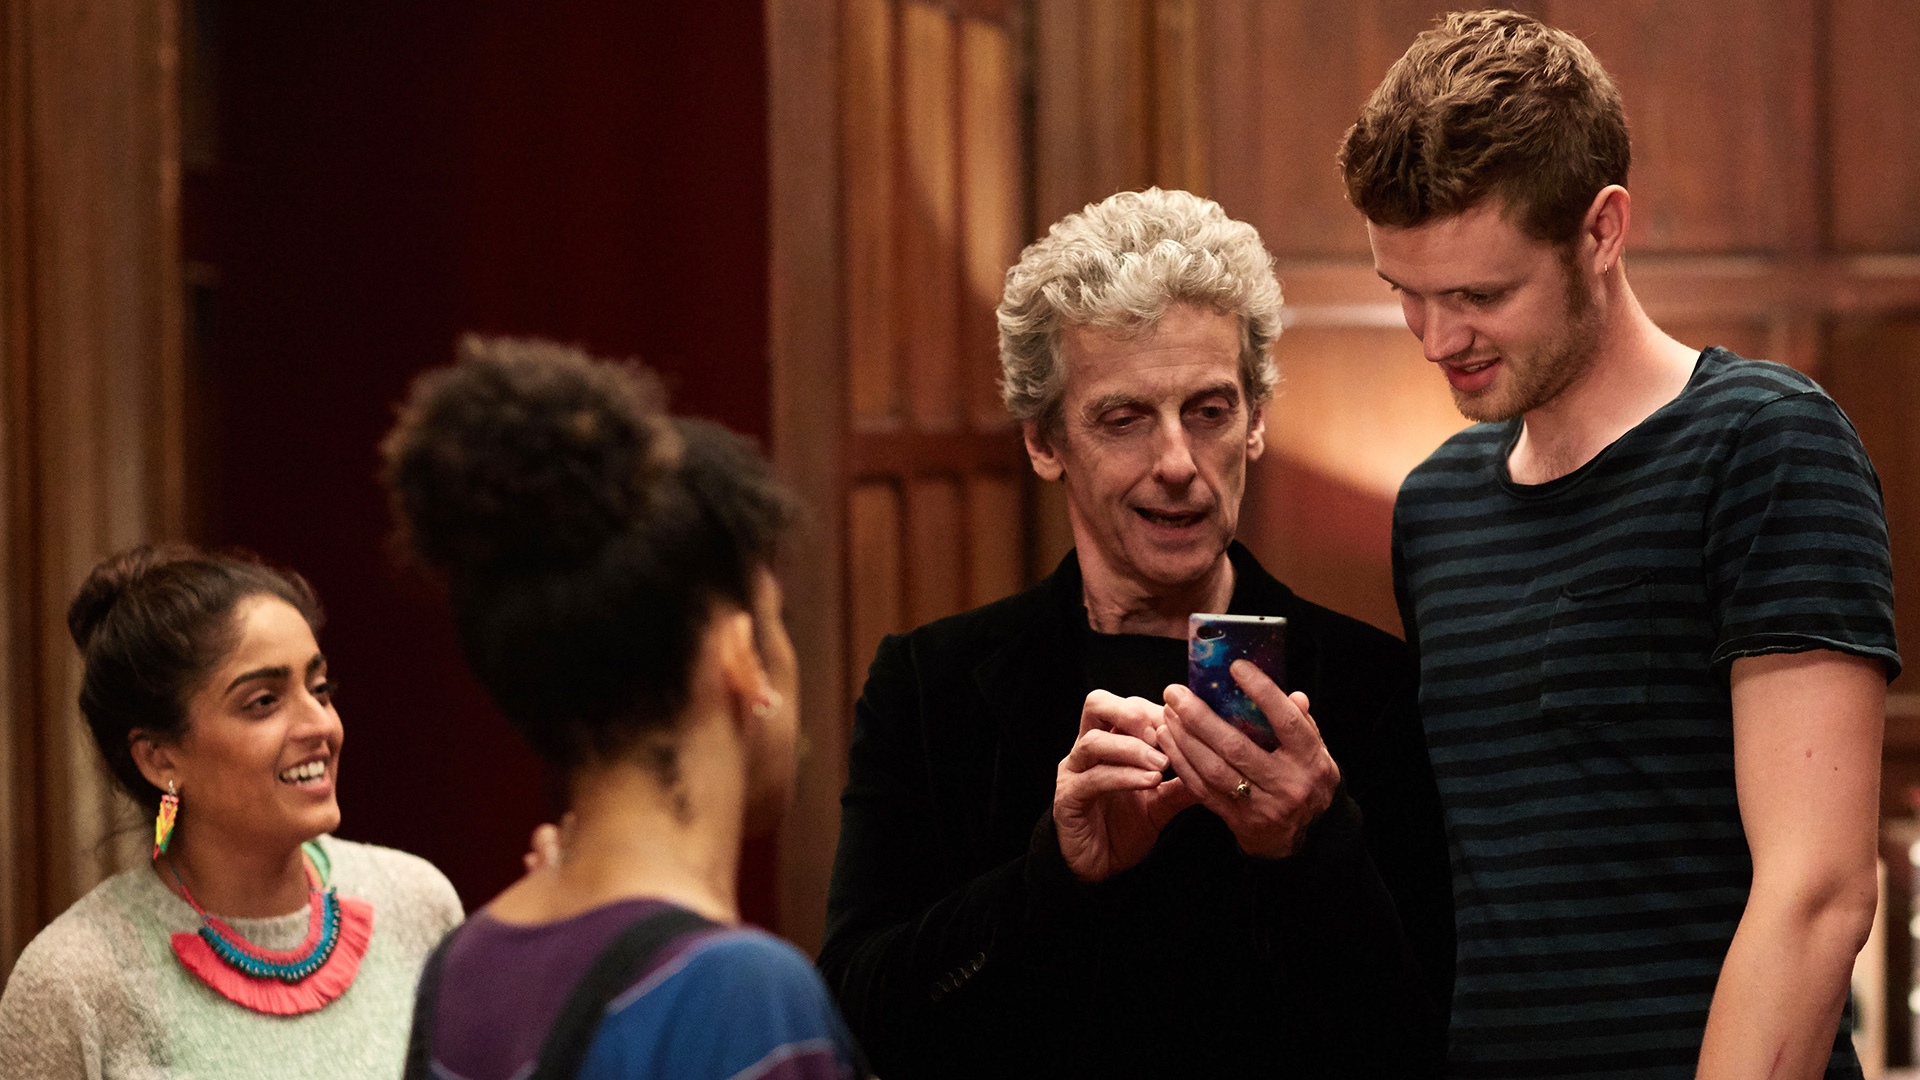 A scene from Doctor Who - the Doctor is showing a young man something on his mobile phone.